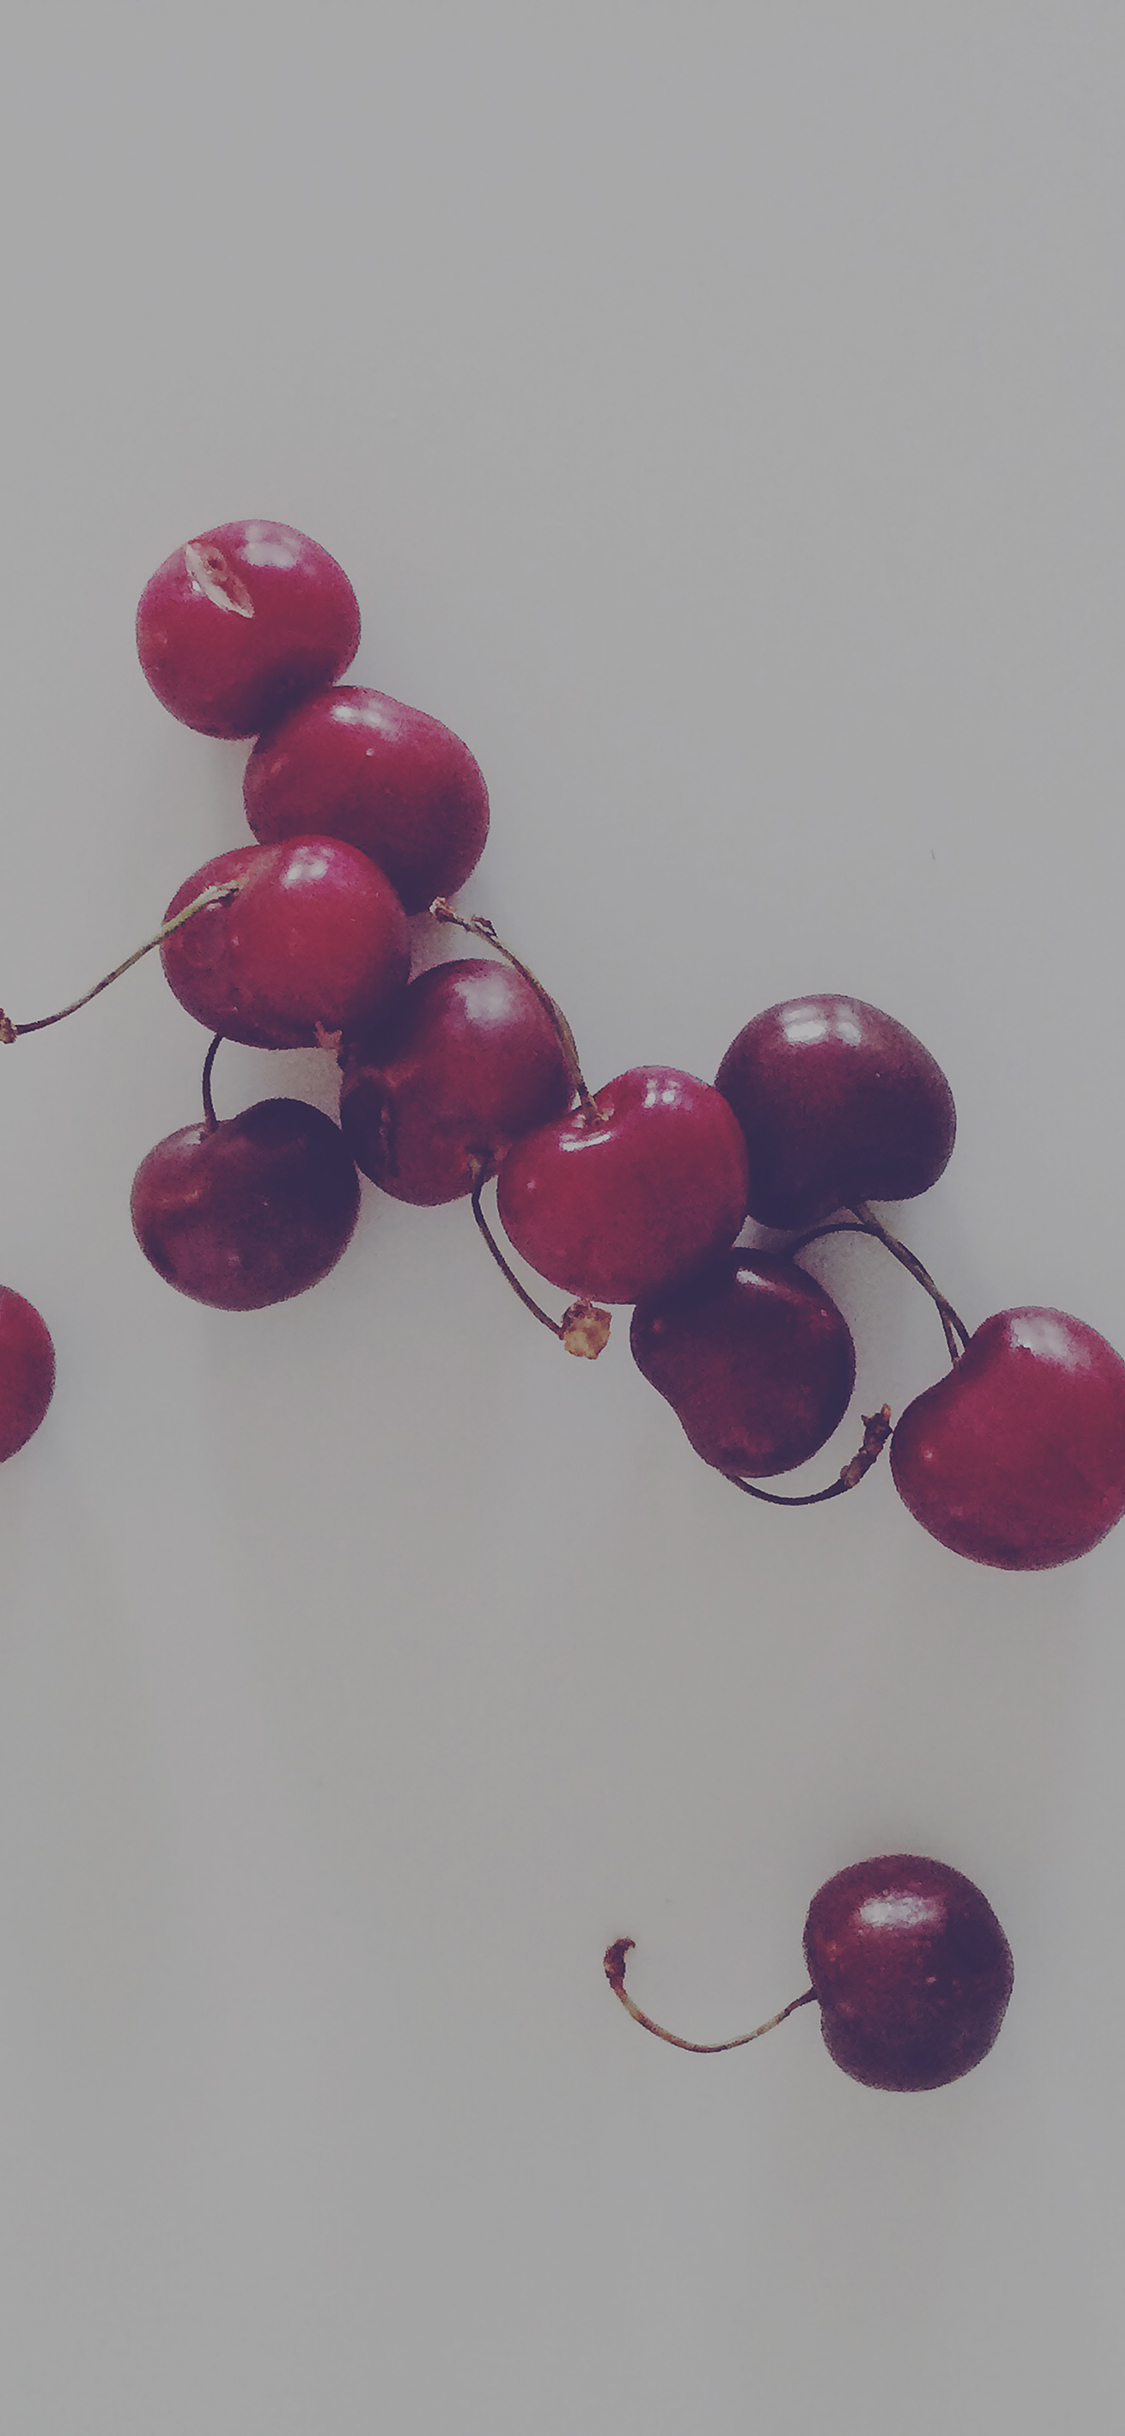 iPhoneXpapers.com-Apple-iPhone-wallpaper-mi50-cherry-red-dark-paula-borowska-fruit-nature